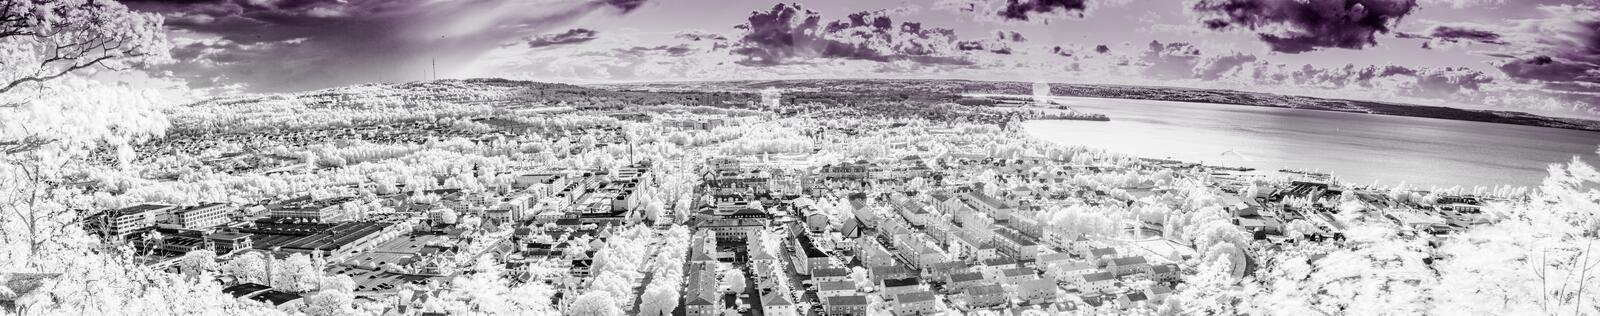 Huskvarna Sweden. The City of Jonkoping from Huskvarna  lookout in Sweden in infrared an ultraviolet stock image